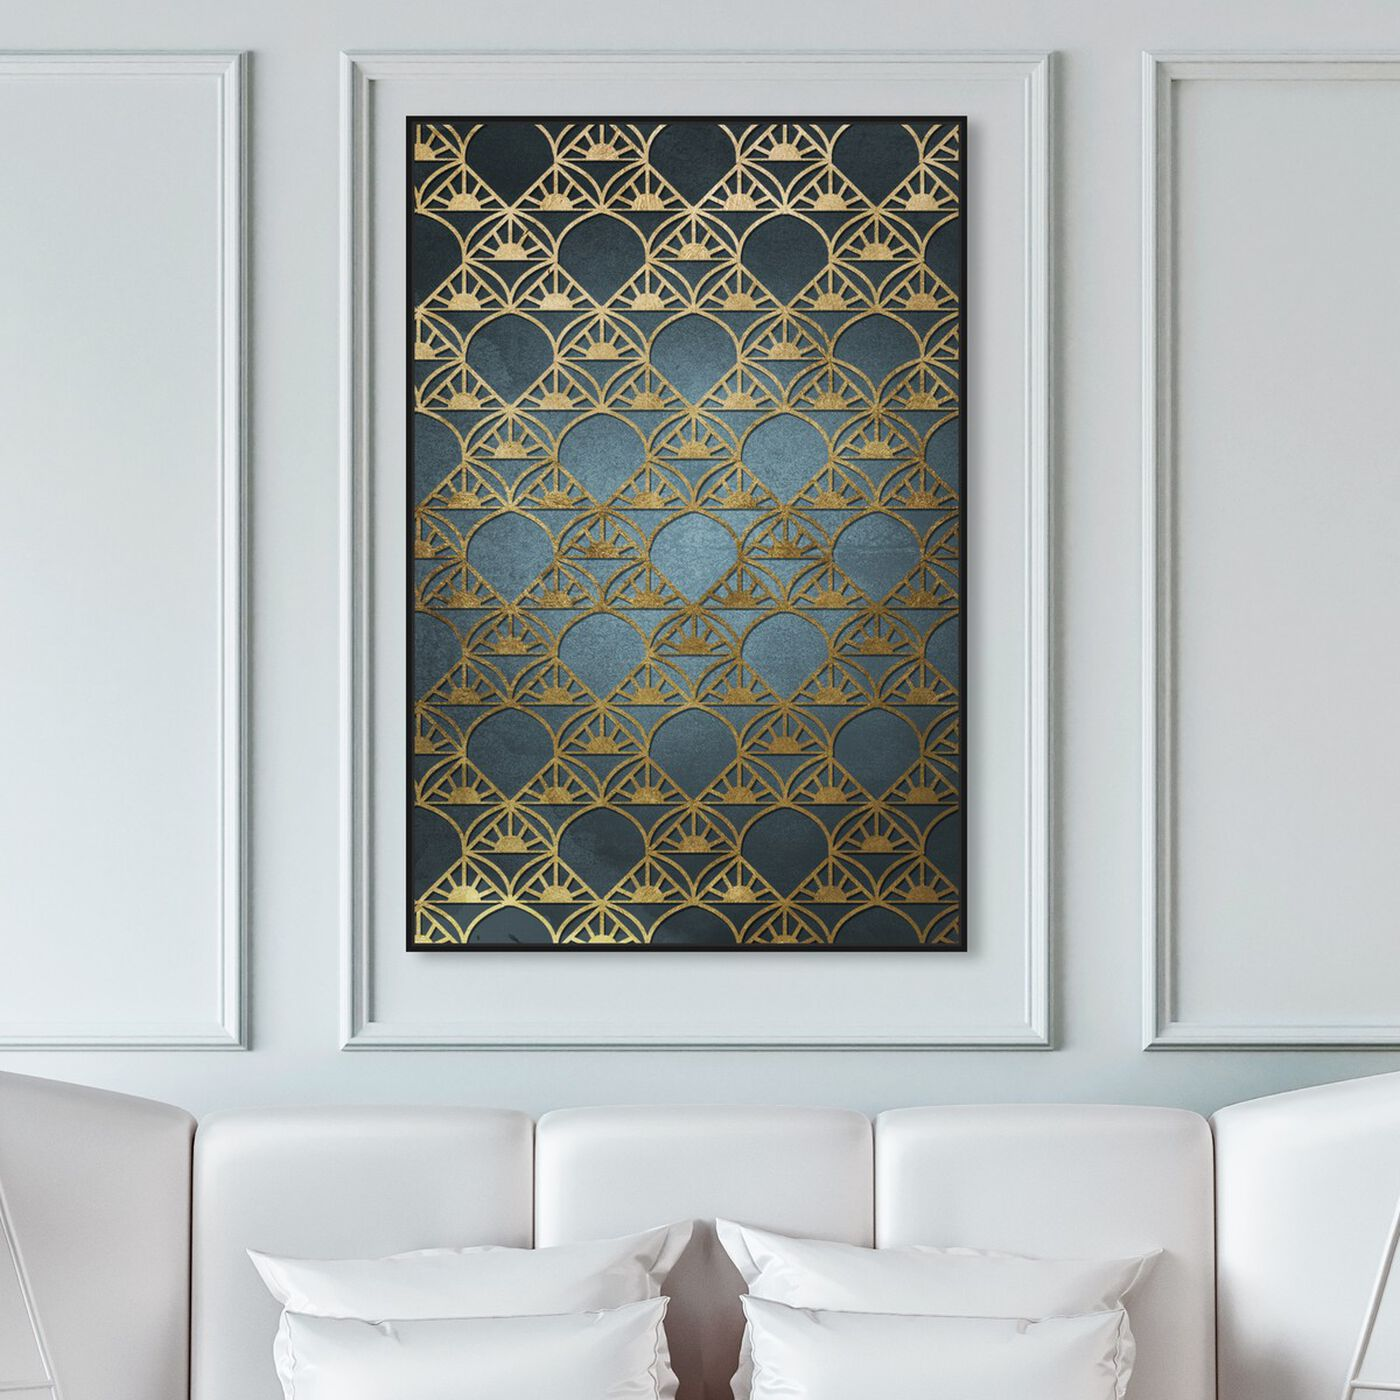 Hanging view of Gold Deco featuring abstract and patterns art.